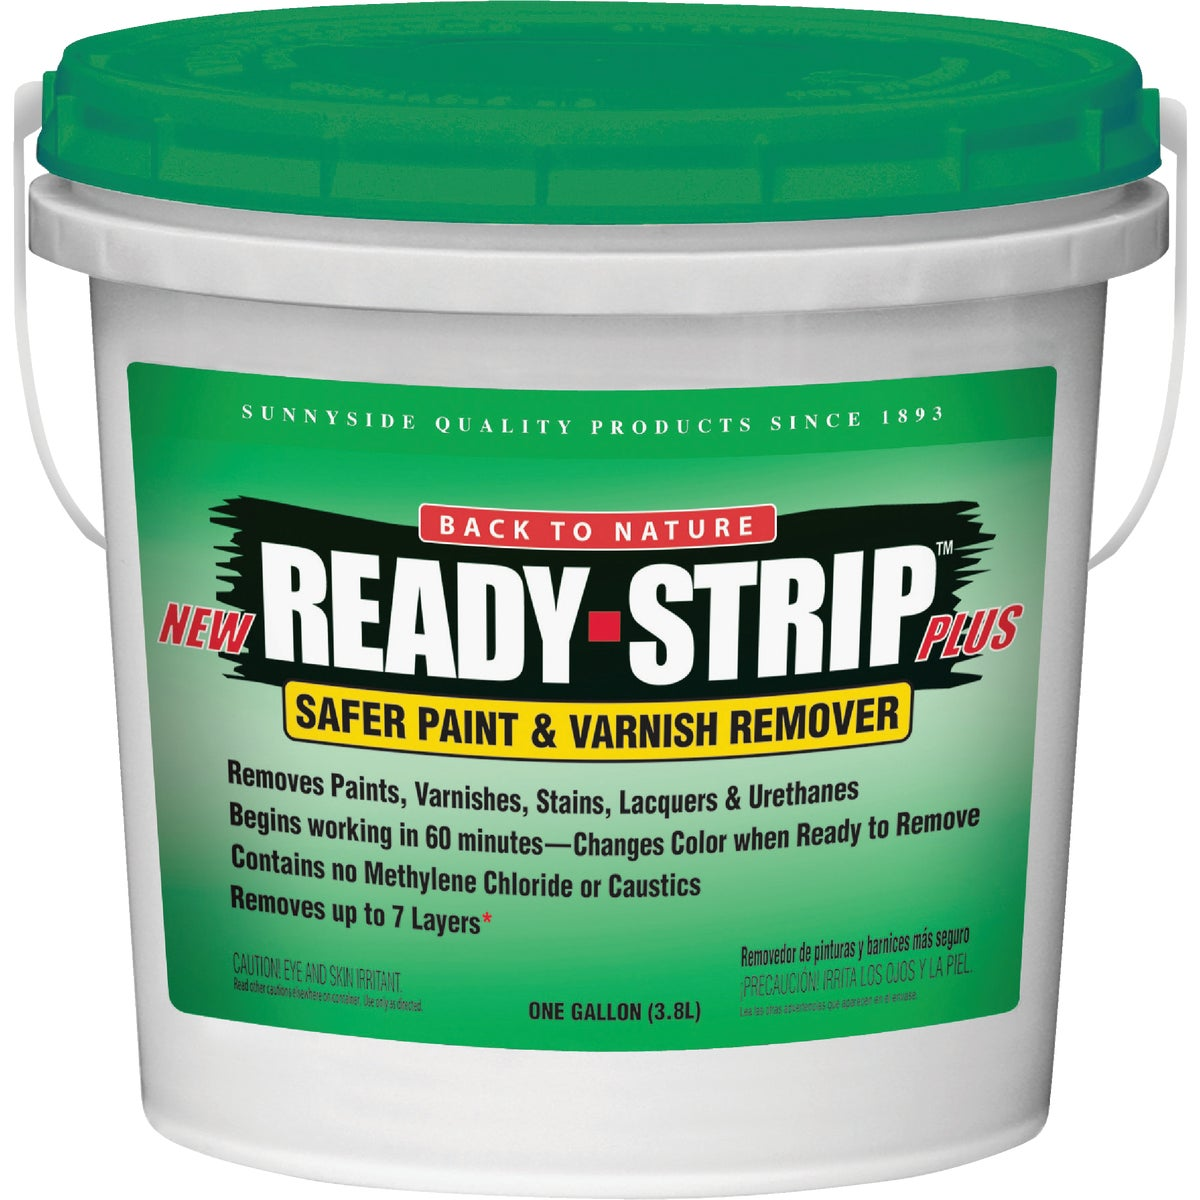 READY STRP PAINT REMOVER